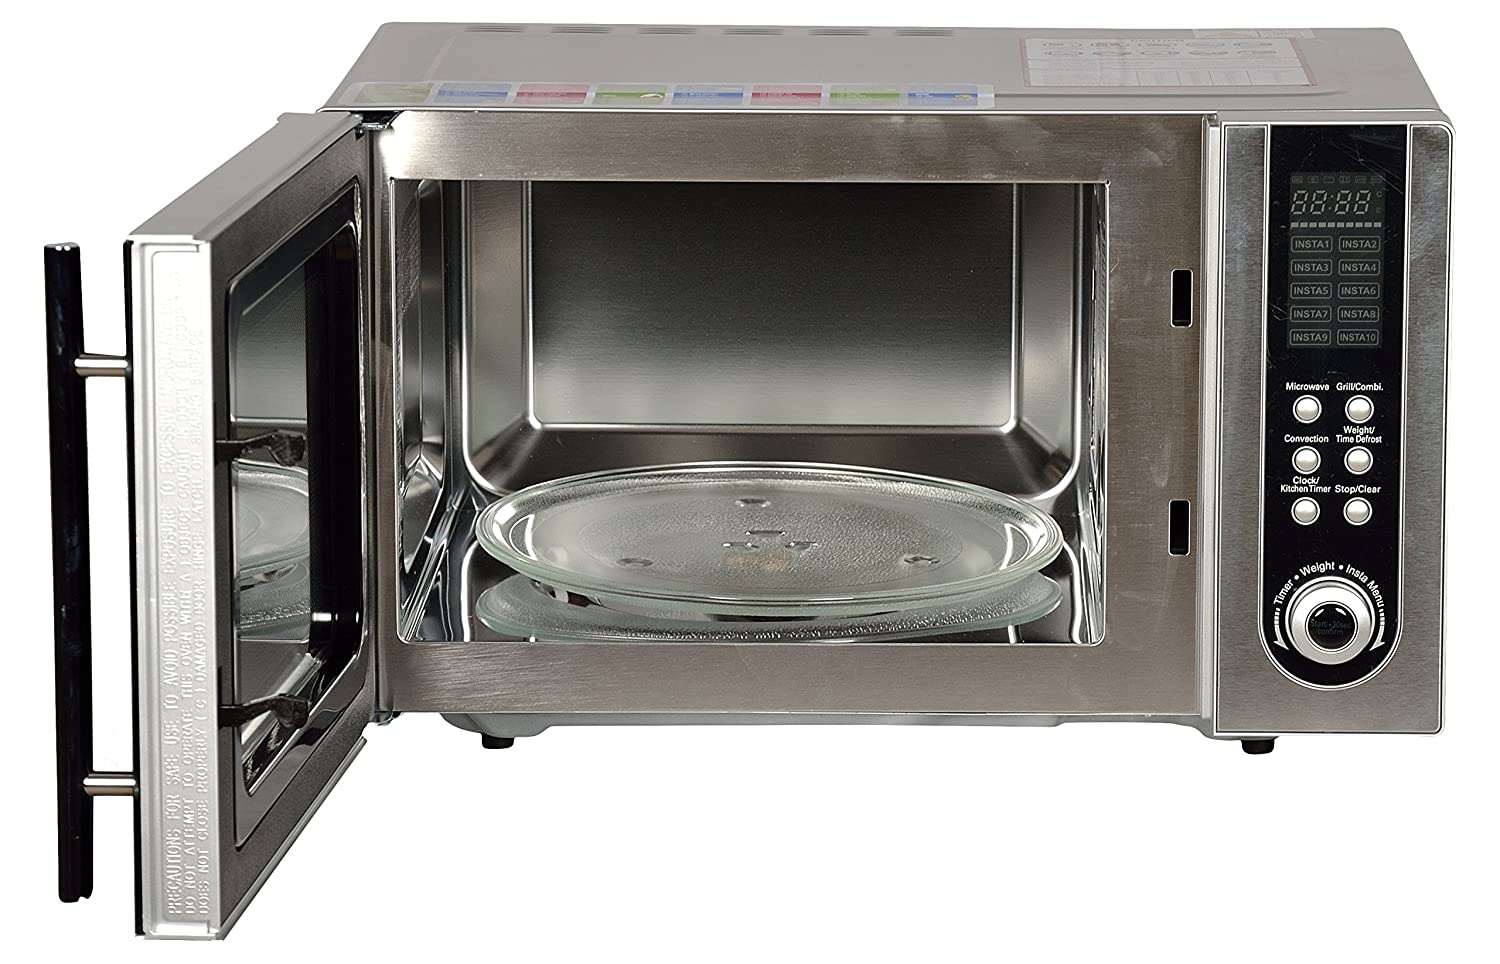 Godrej 23 L Convection Microwave Oven (GMX 23CA1 MKM, Sliver): Amazon.in:  Home & Kitchen